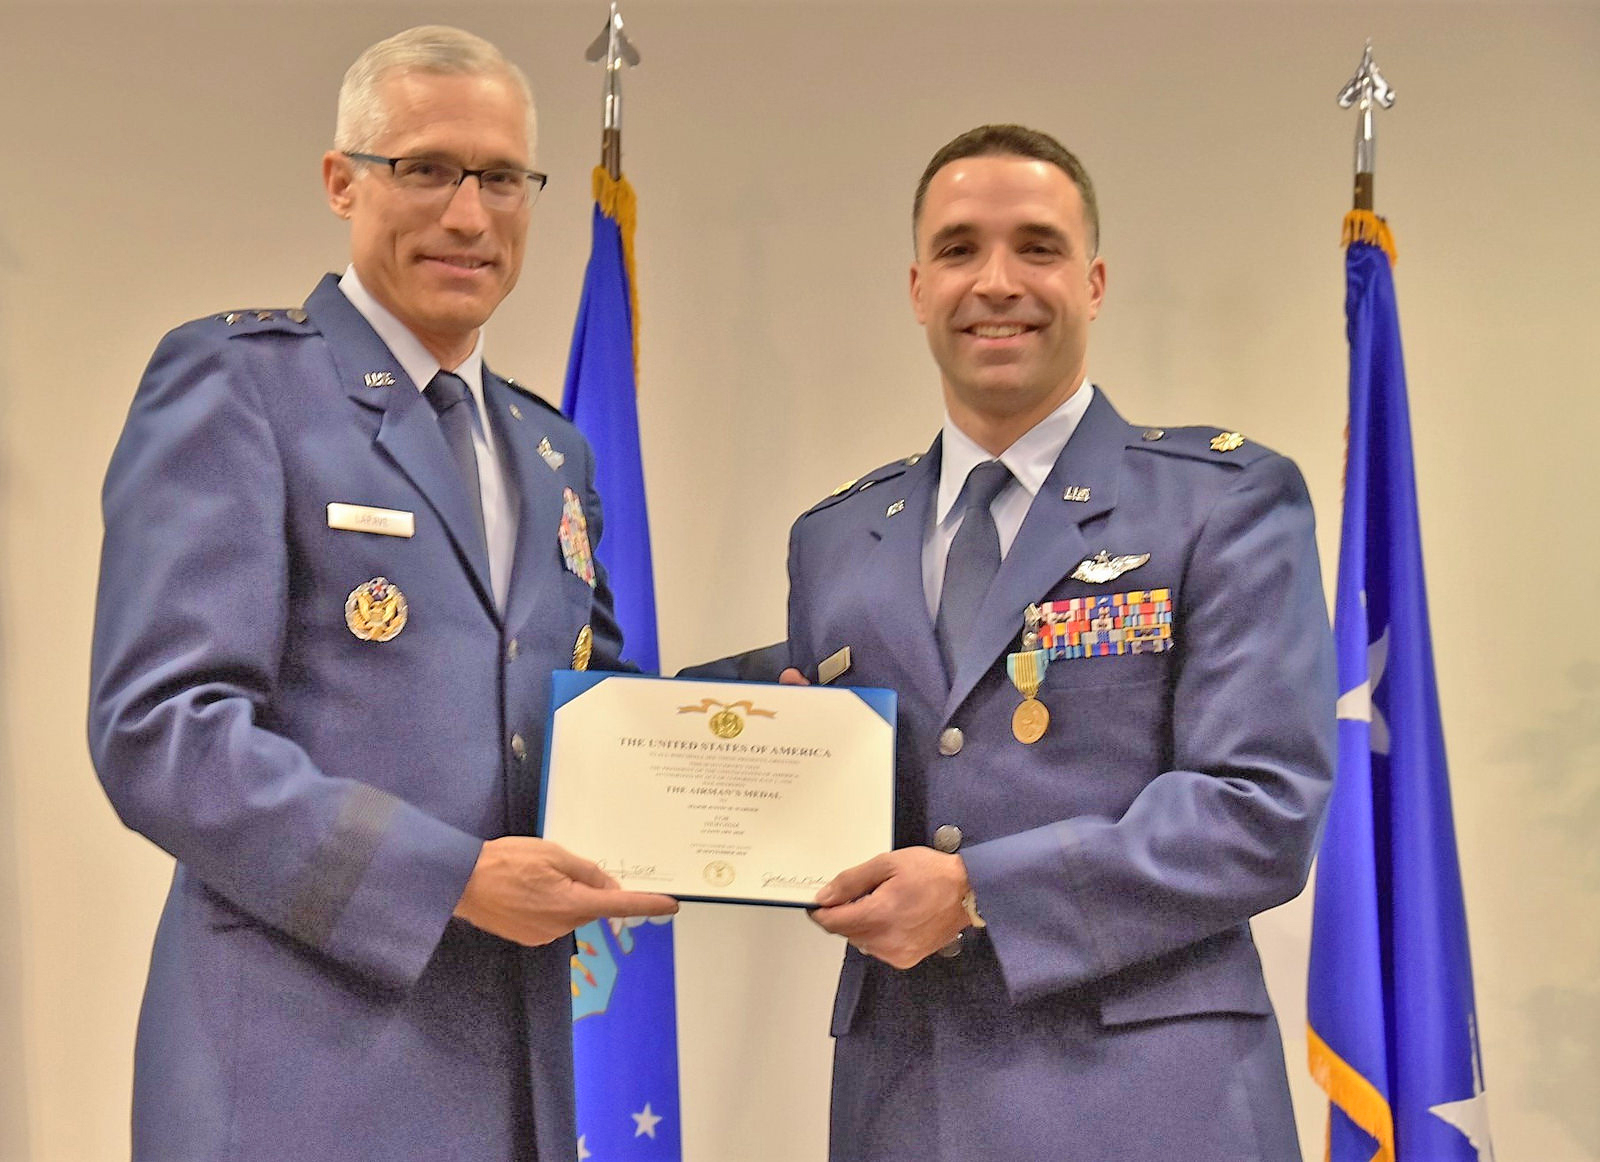 Major Justin Warner, right, receives the Airman's Medal for an extraordinary act of bravery outside of combat. Photo by Shepphard Air Force Base